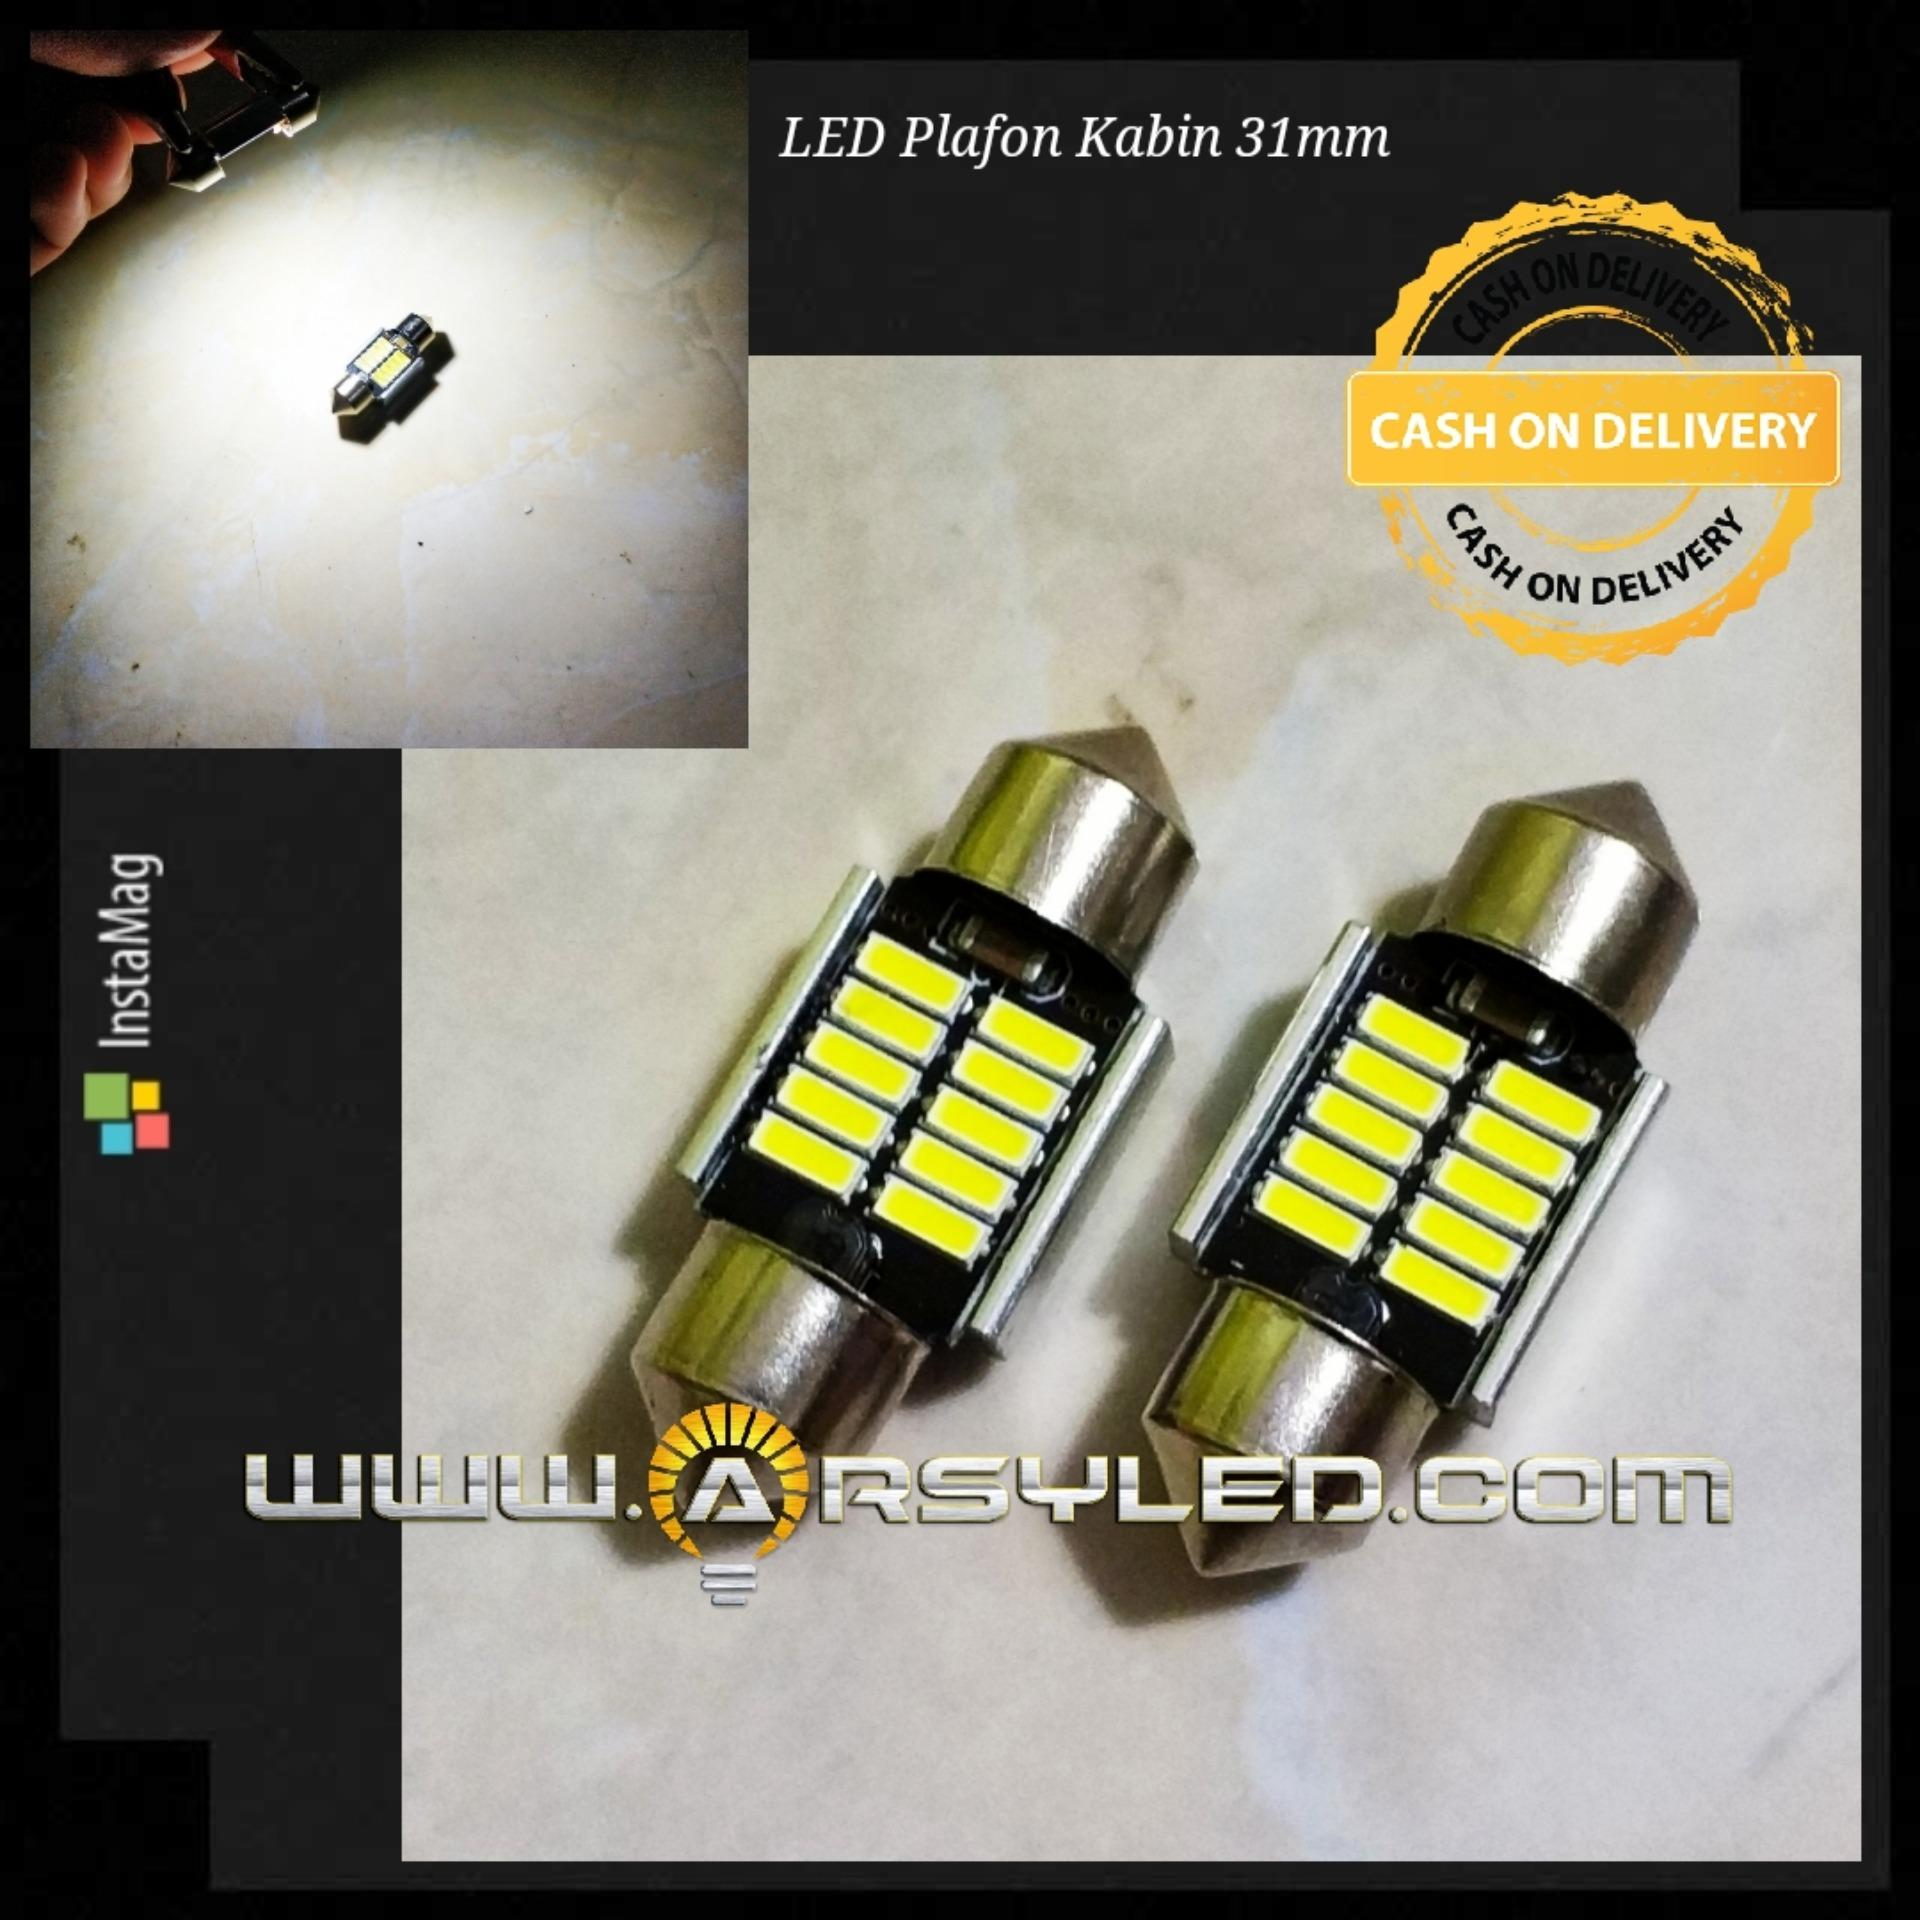 2 Biji Lampu Kabin Plafon Canbus 31 Mm 12 Titik 4014 Festoon C5w Arsystore Arsy - Putih By Arsystore.